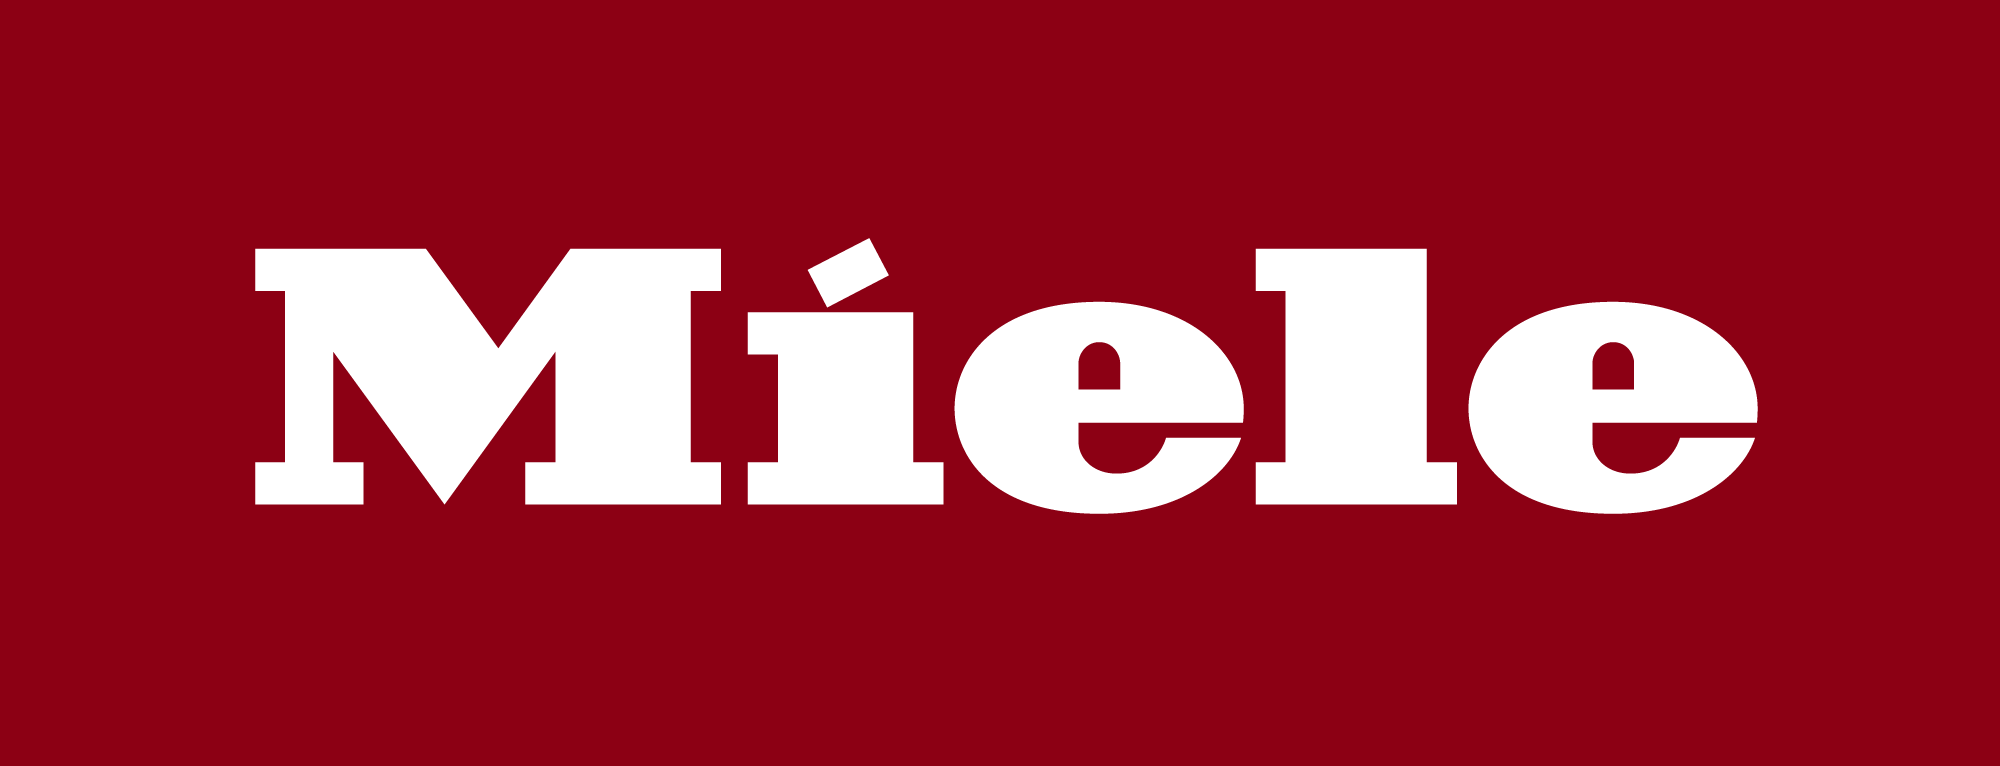 image-10604999-Miele_Logo_M_Red_sRGB-c20ad.png?1594711505767